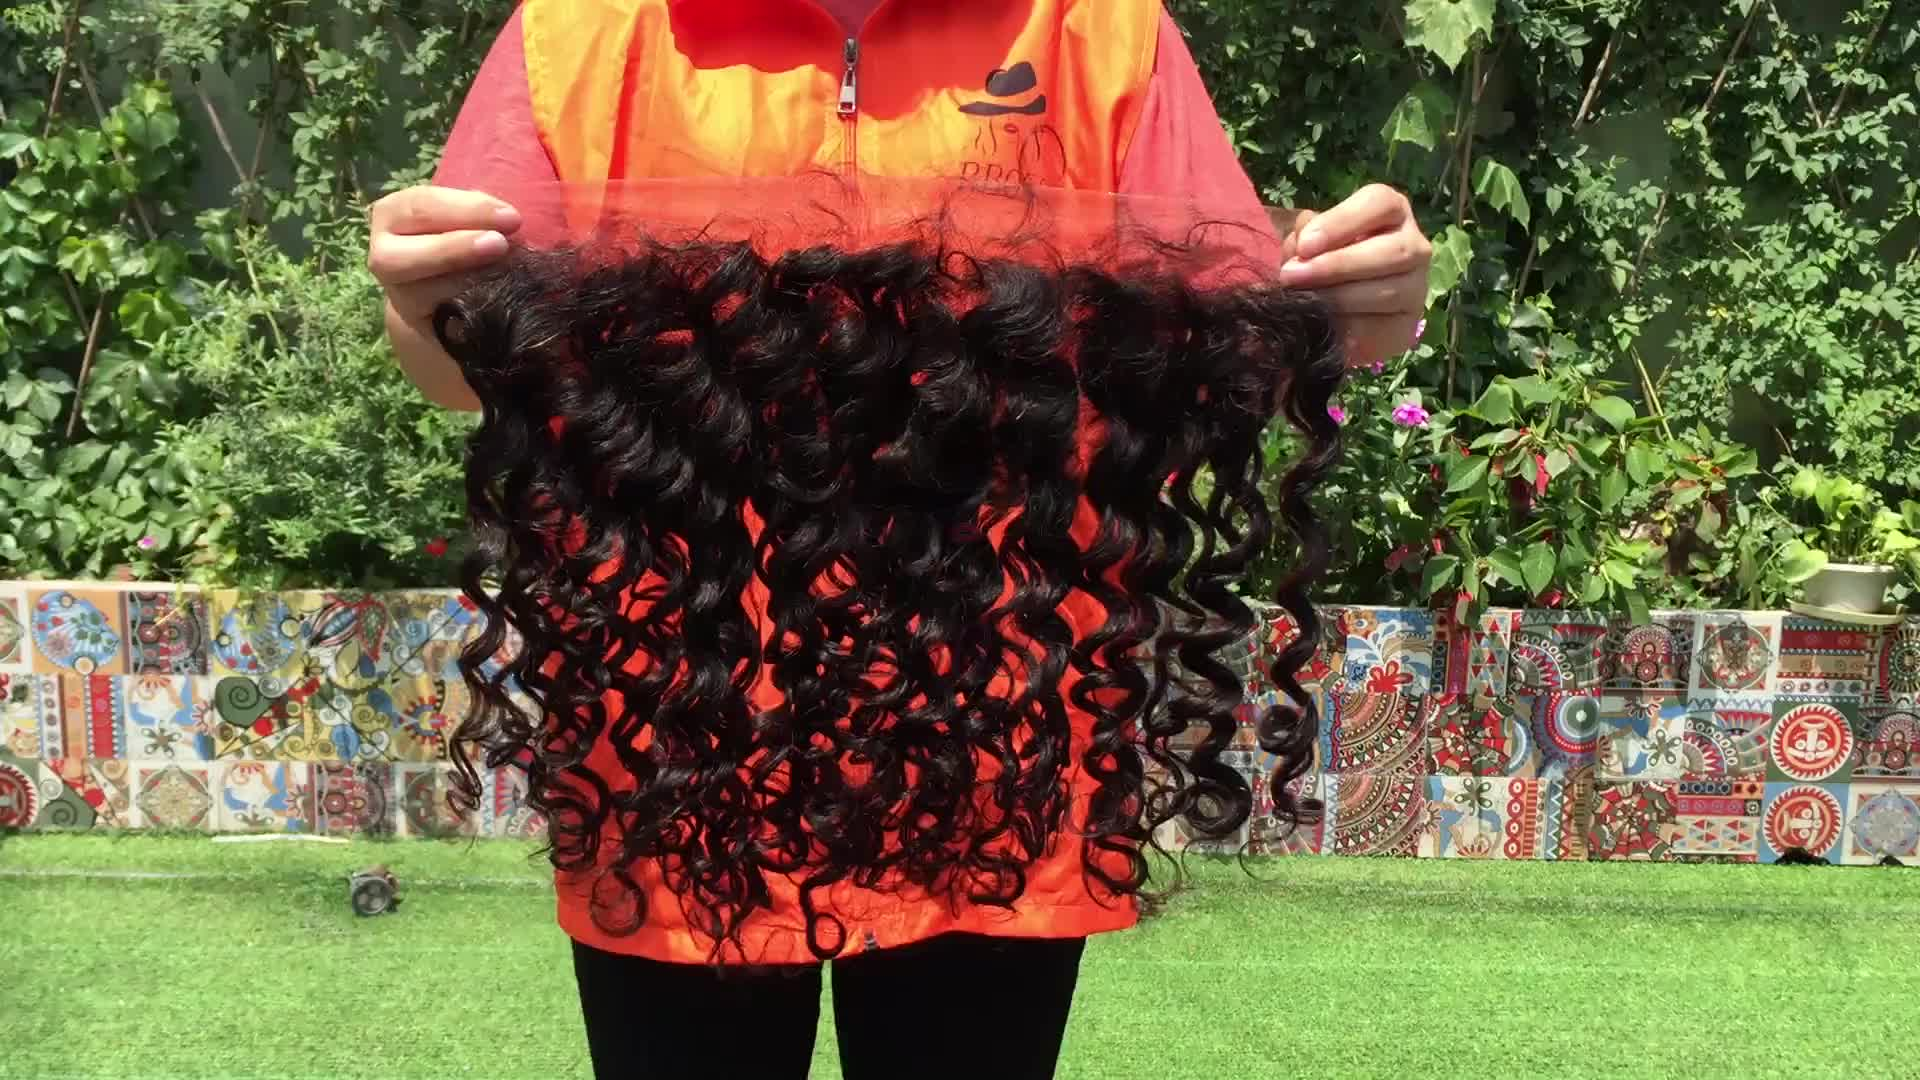 Raw Virgin bohemian hair preplucked frontal closures lace,blond lace frontals with baby hair,pre plucked lace frontal 13x8